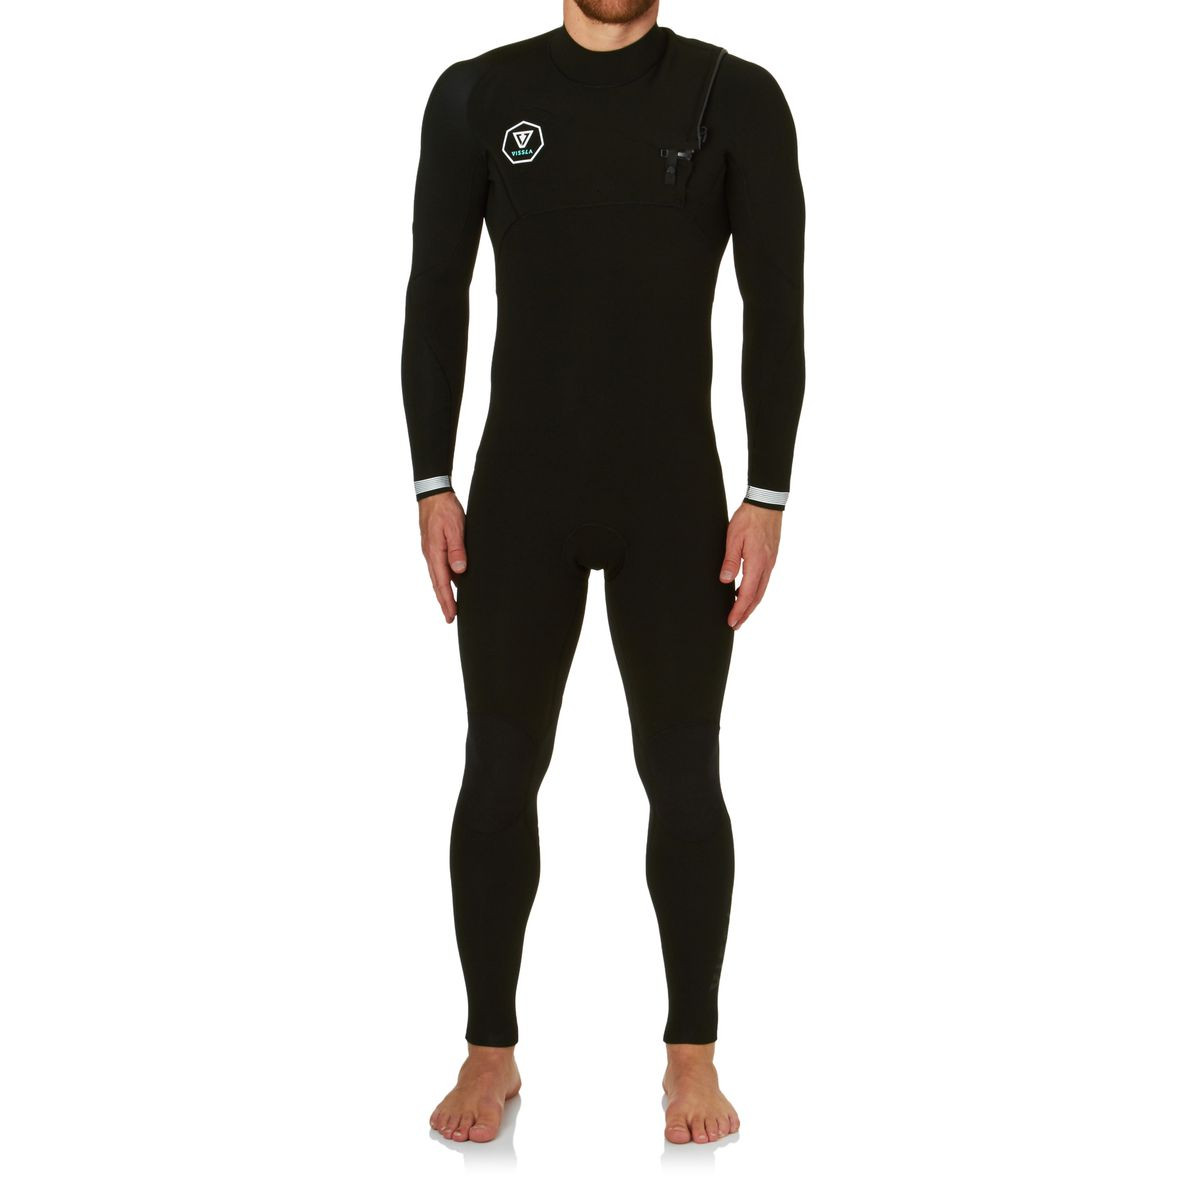 Vissla Seven Seas 4/3mm 2017 Chest Zip Wetsuit - Black With White